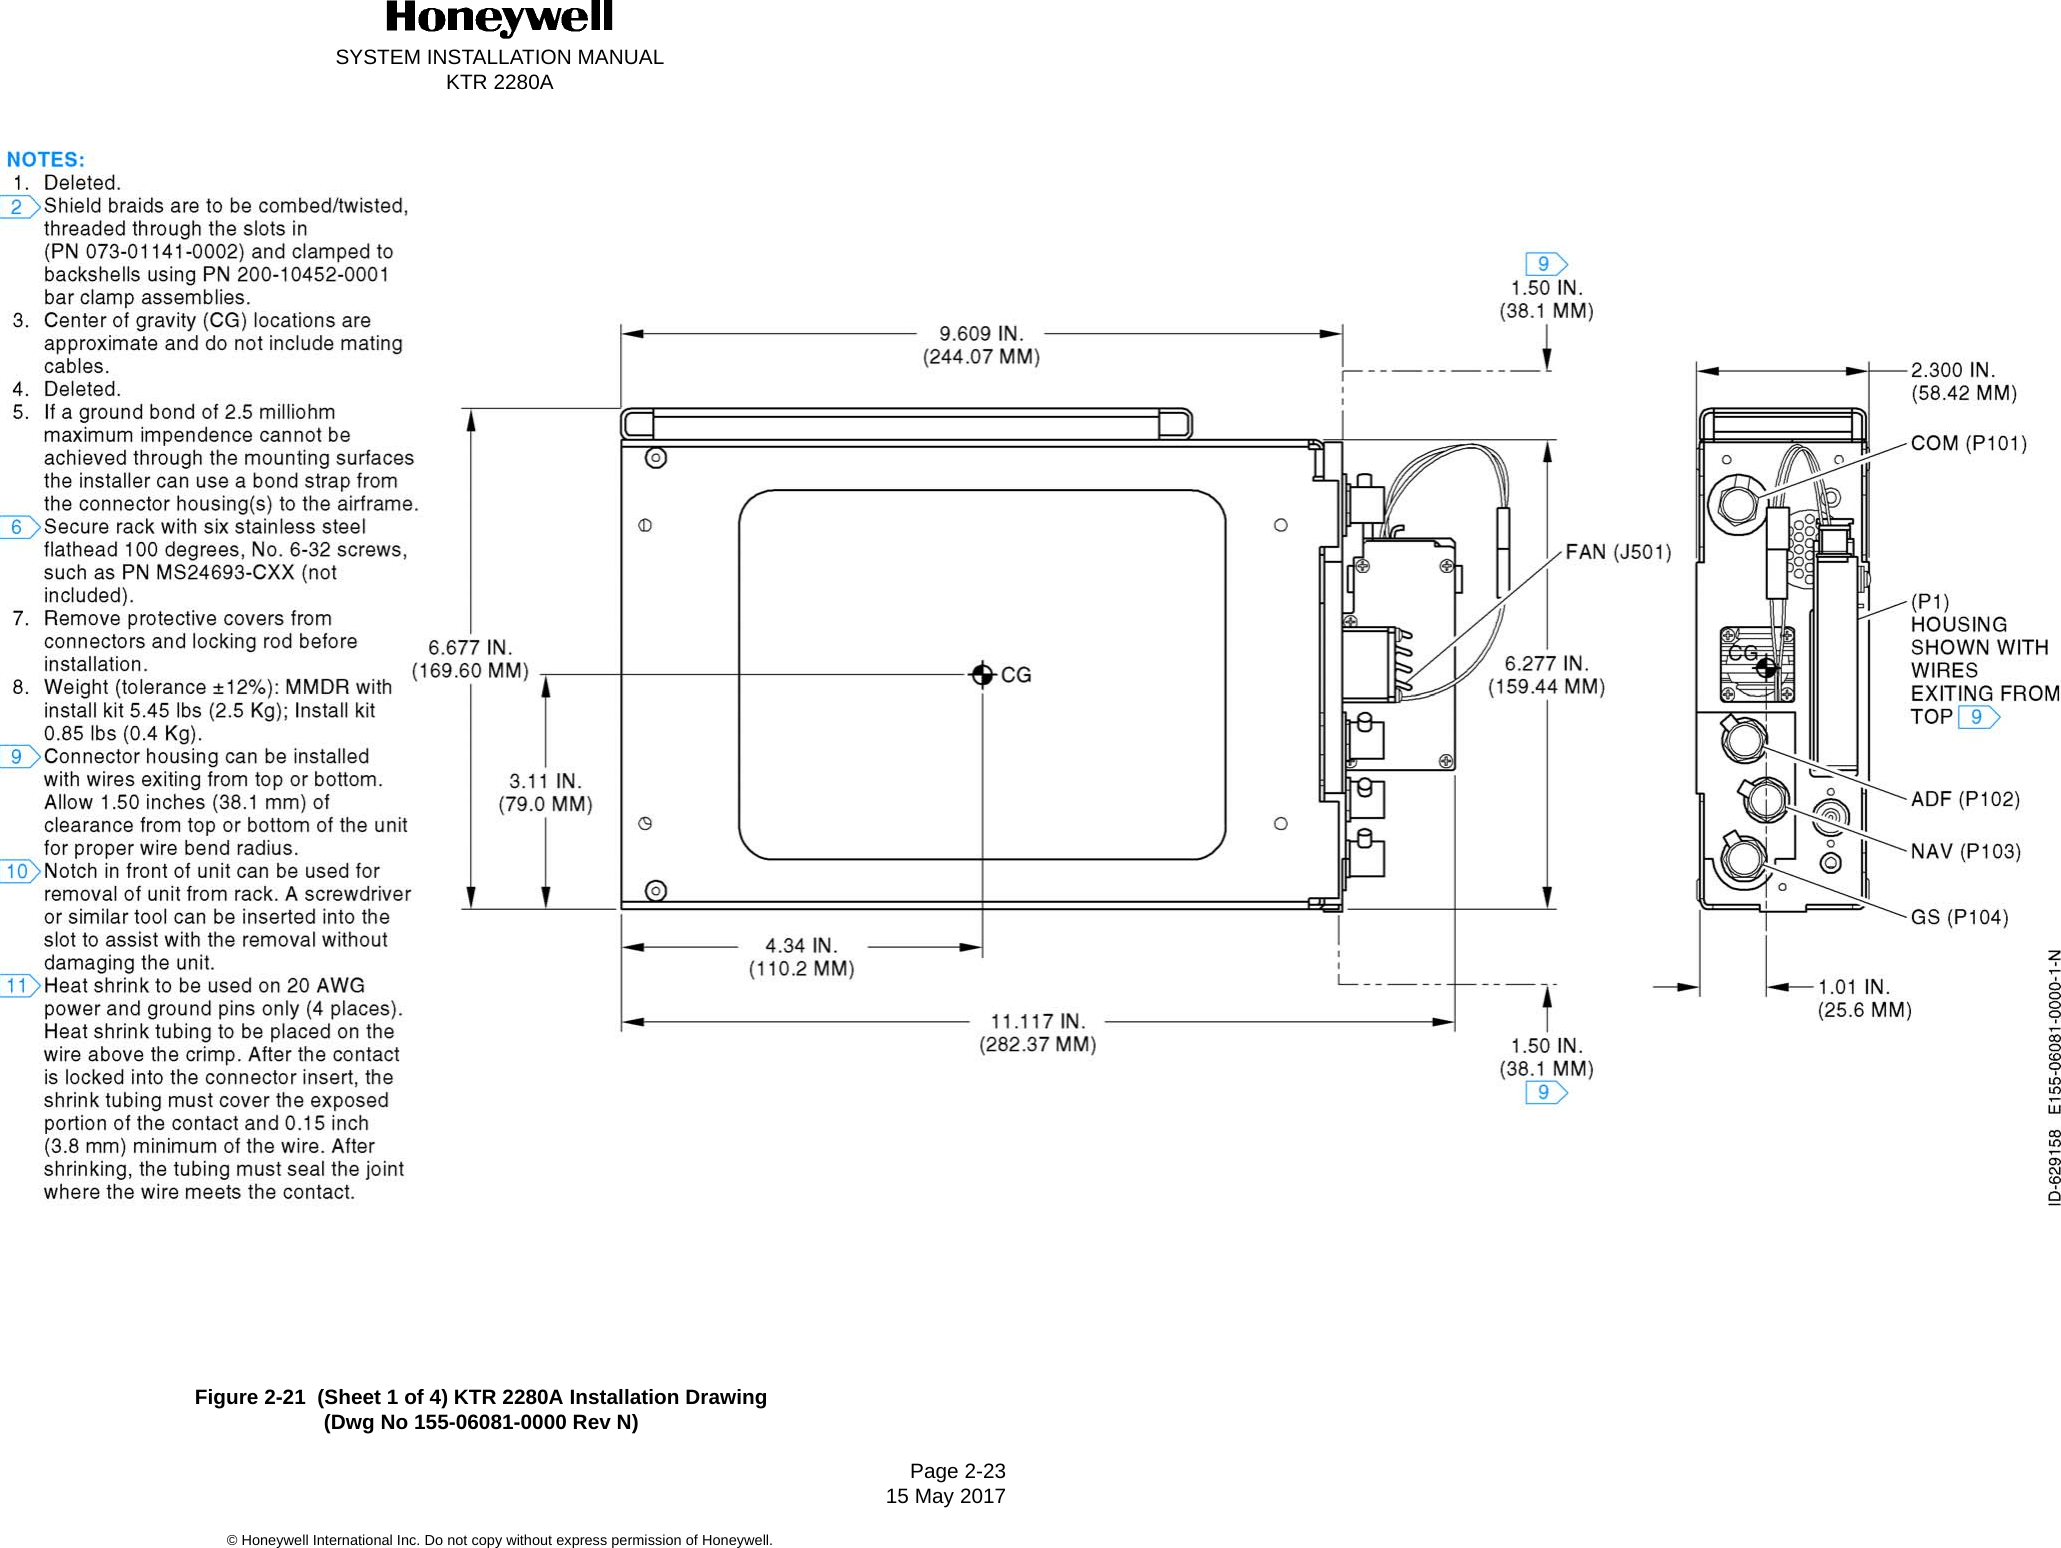 Honeywell Ktr2280a Licensed Non Broadcast Aeronautical Transmitter Data Sheet Drawing Information Housing Diagram Page 2 Wiring System Installation Manualktr 2280apage 23 15 May 2017 International Inc Do